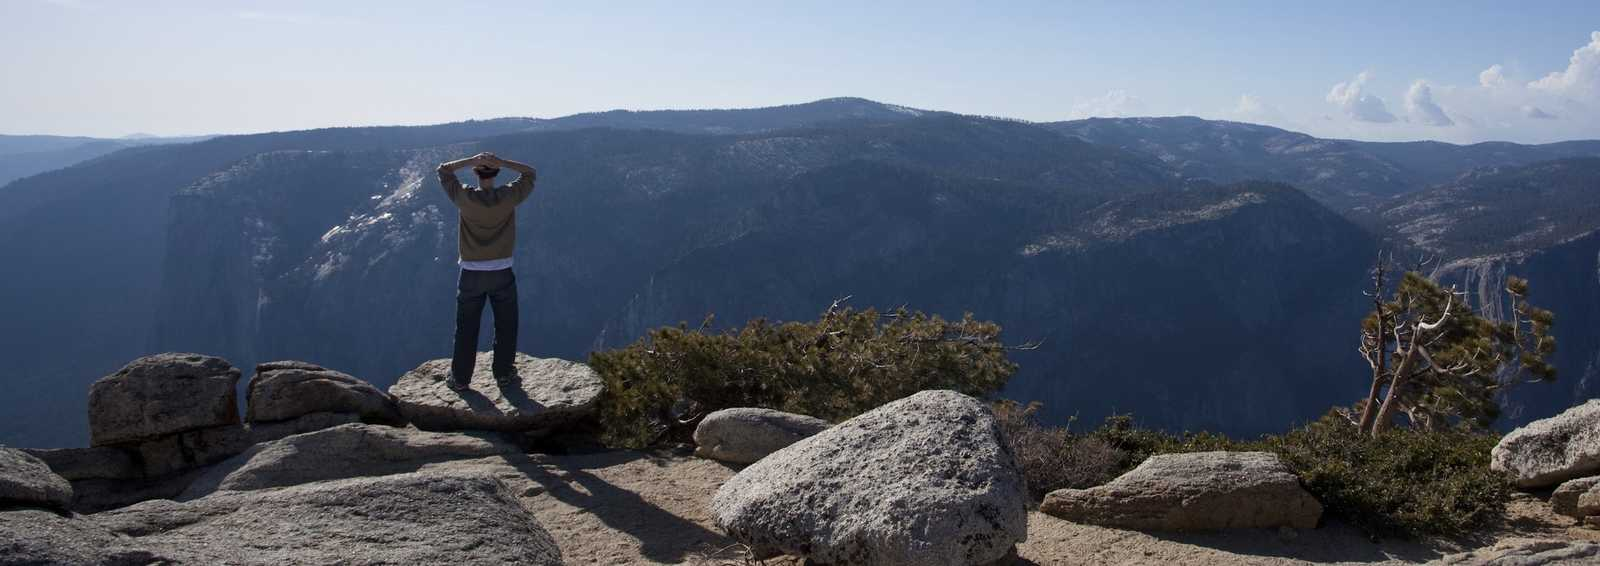 View from Sentinel Point over Yosemite valley, USA